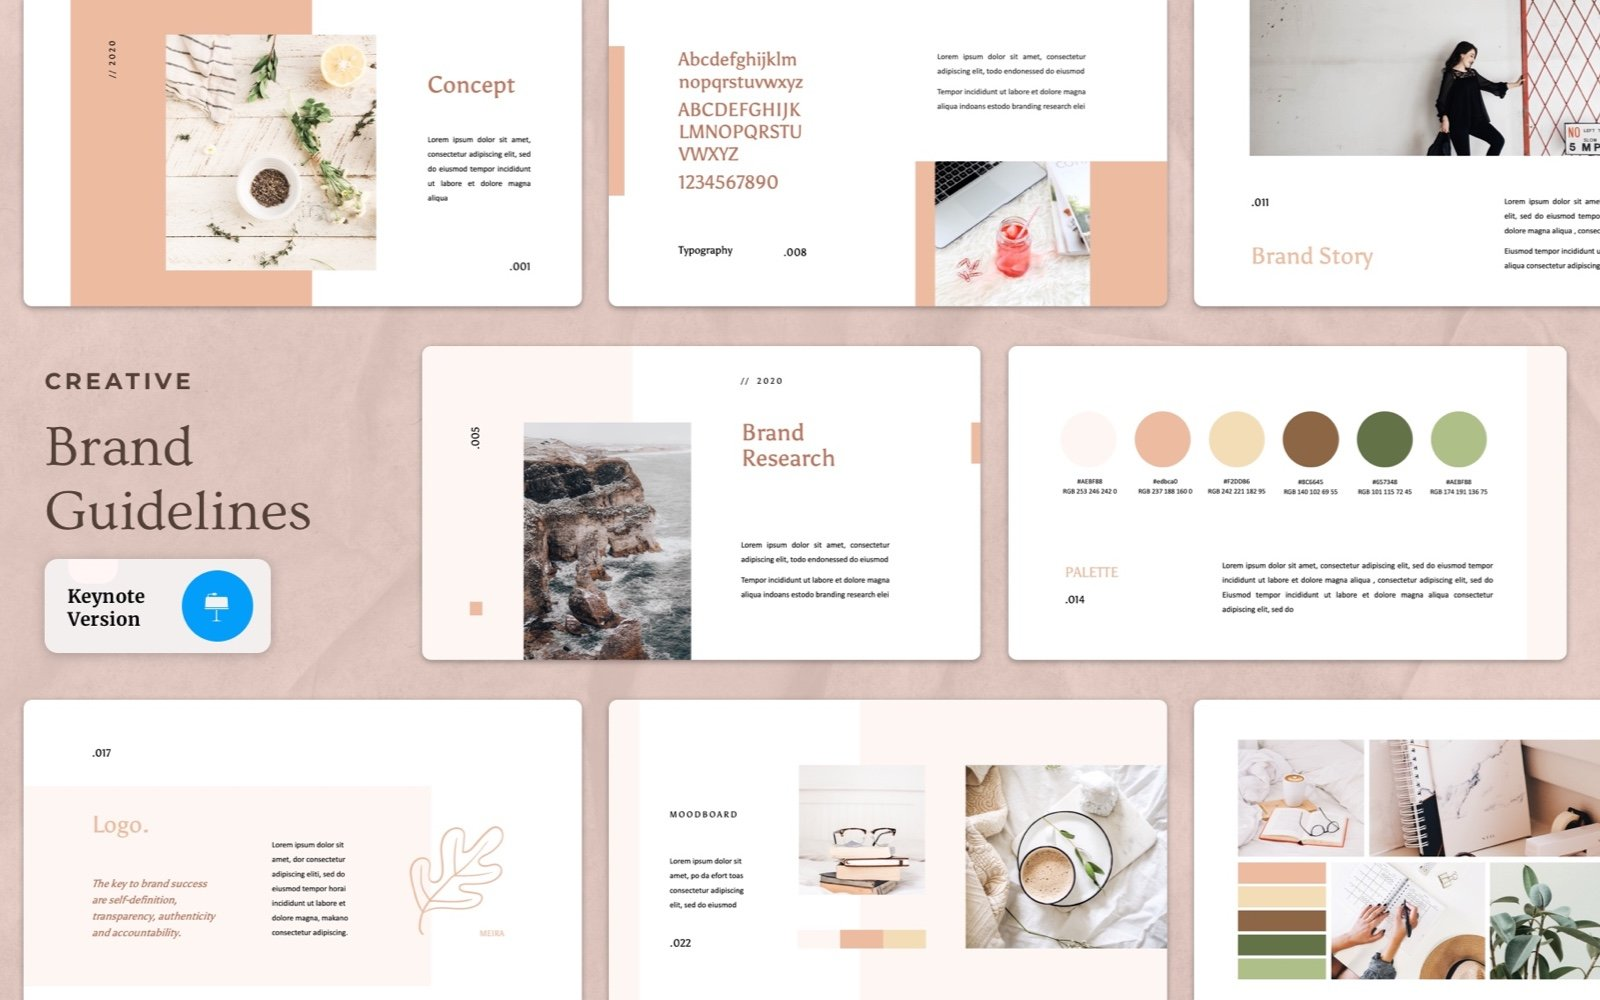 Creative Brand Guideline Keynote Template